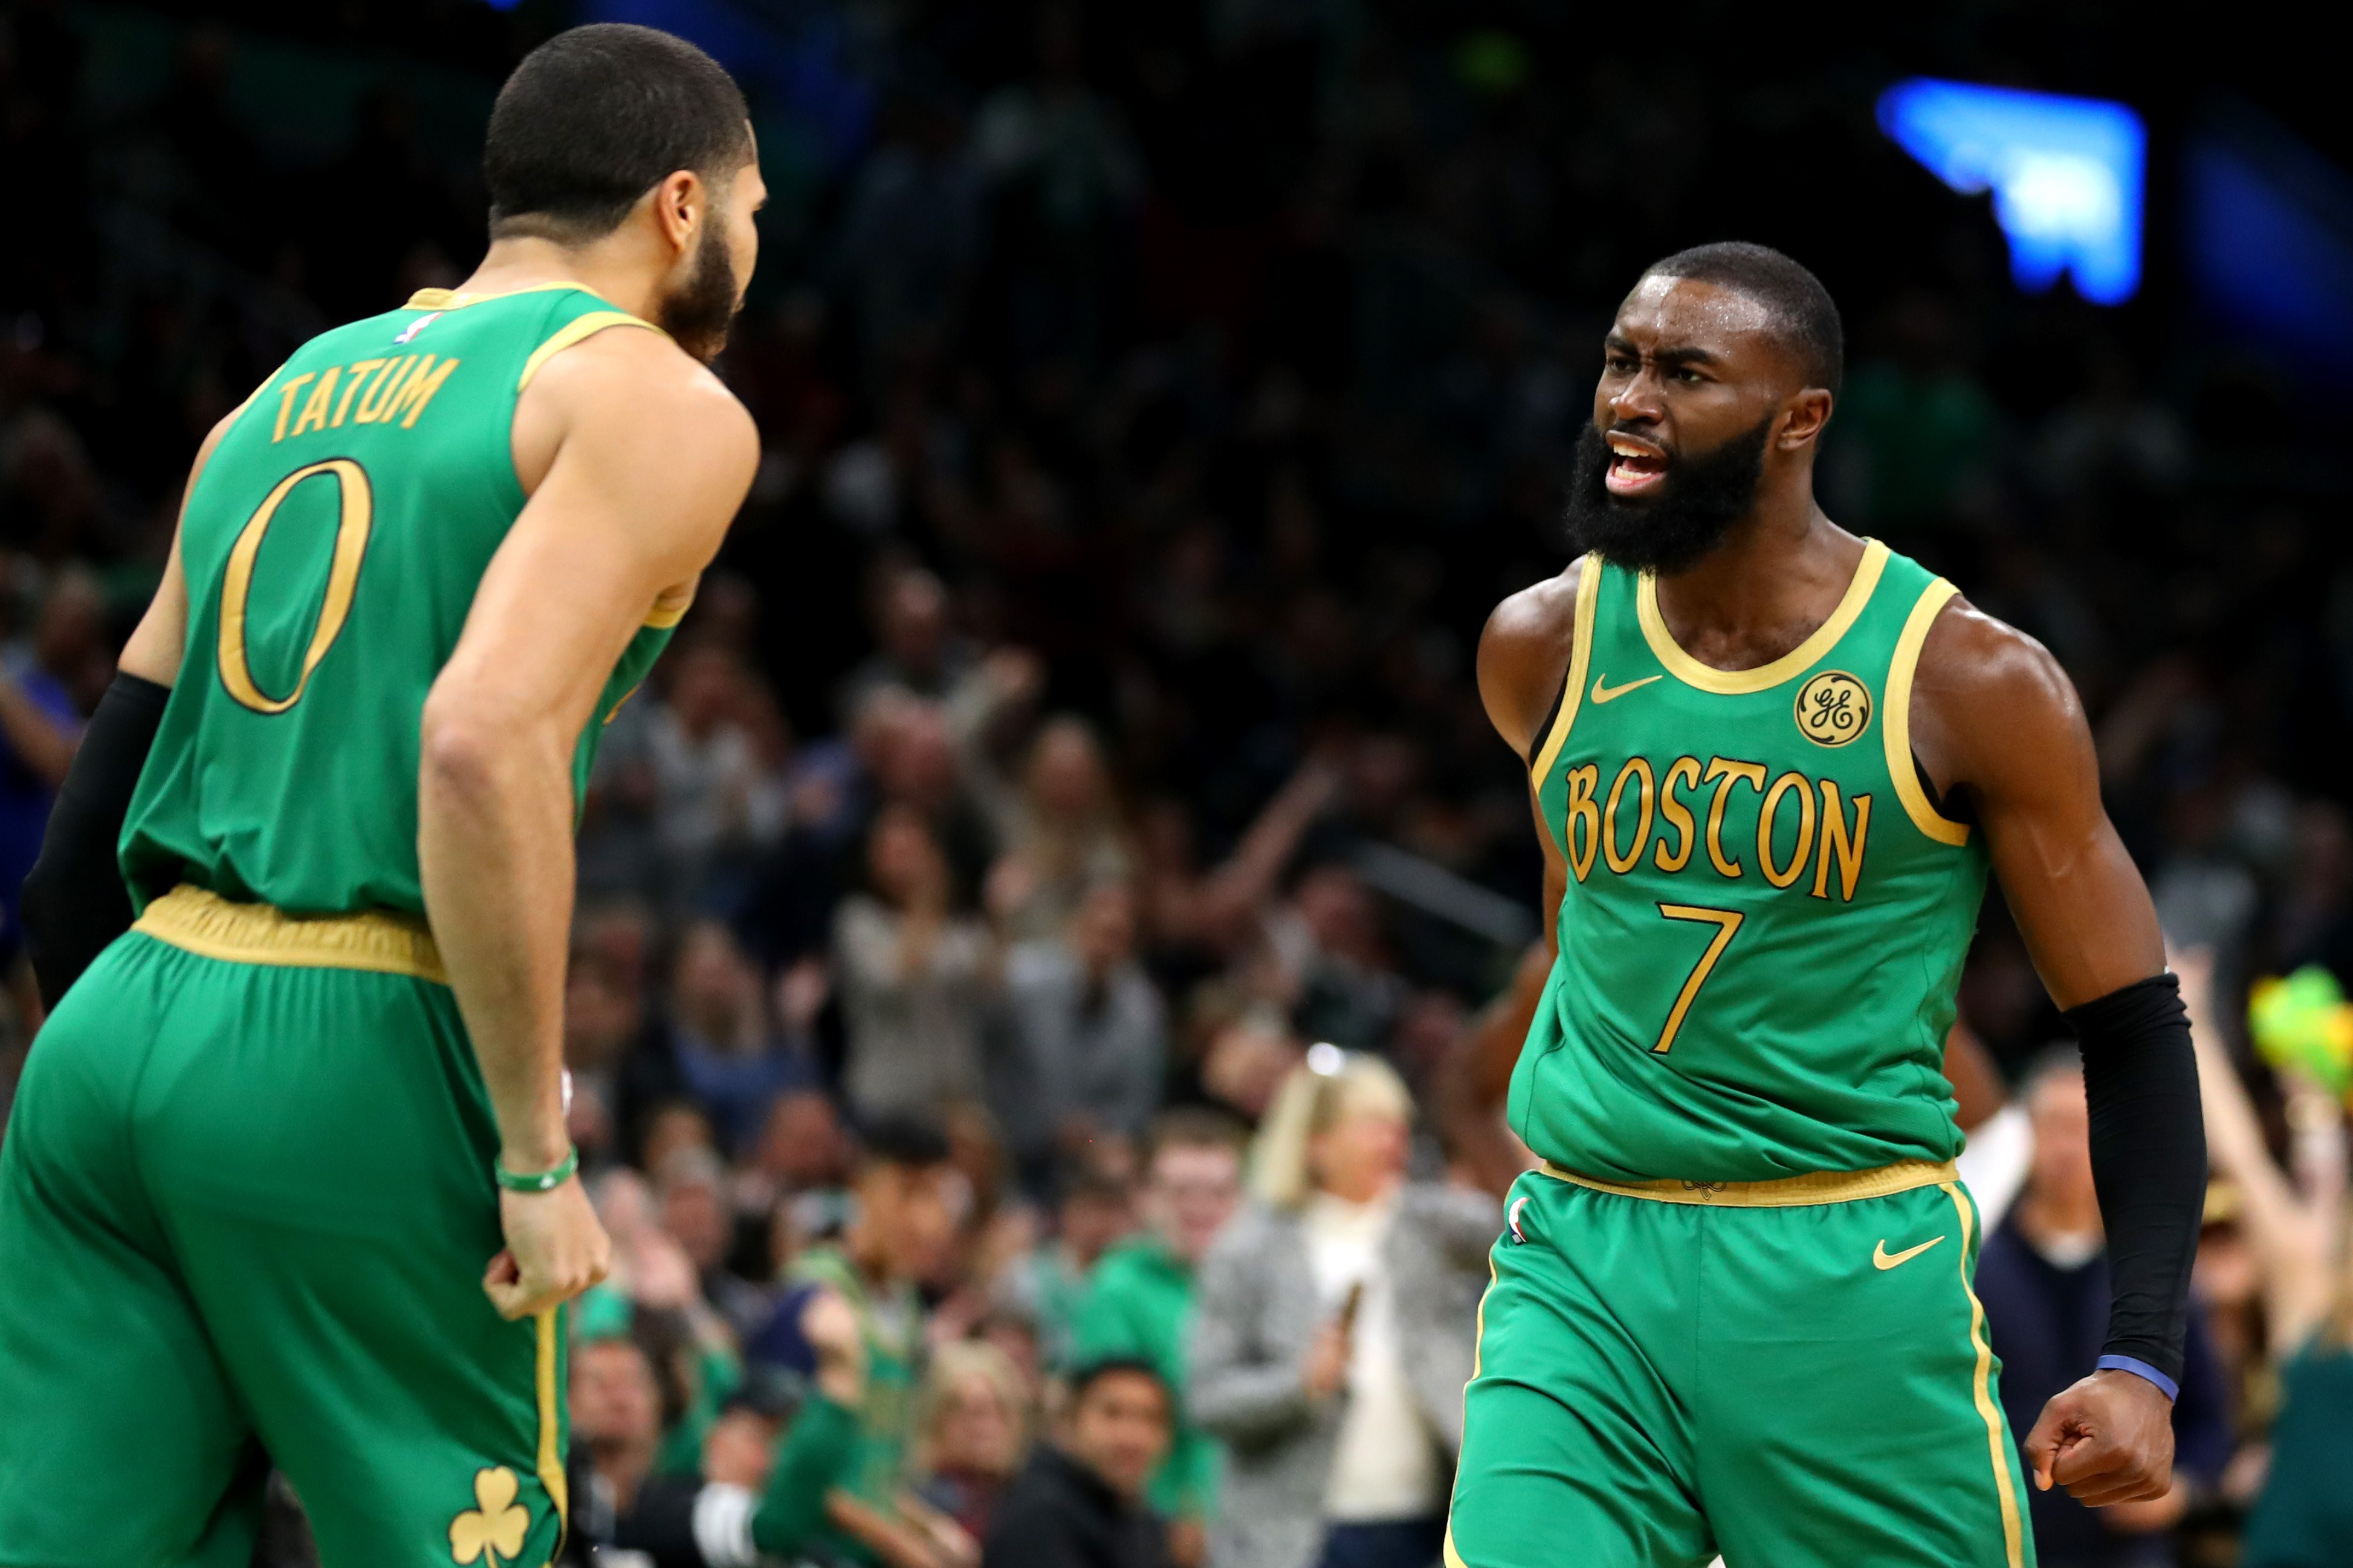 Jayston Tatum and Jaylen Brown of the Boston Celtics